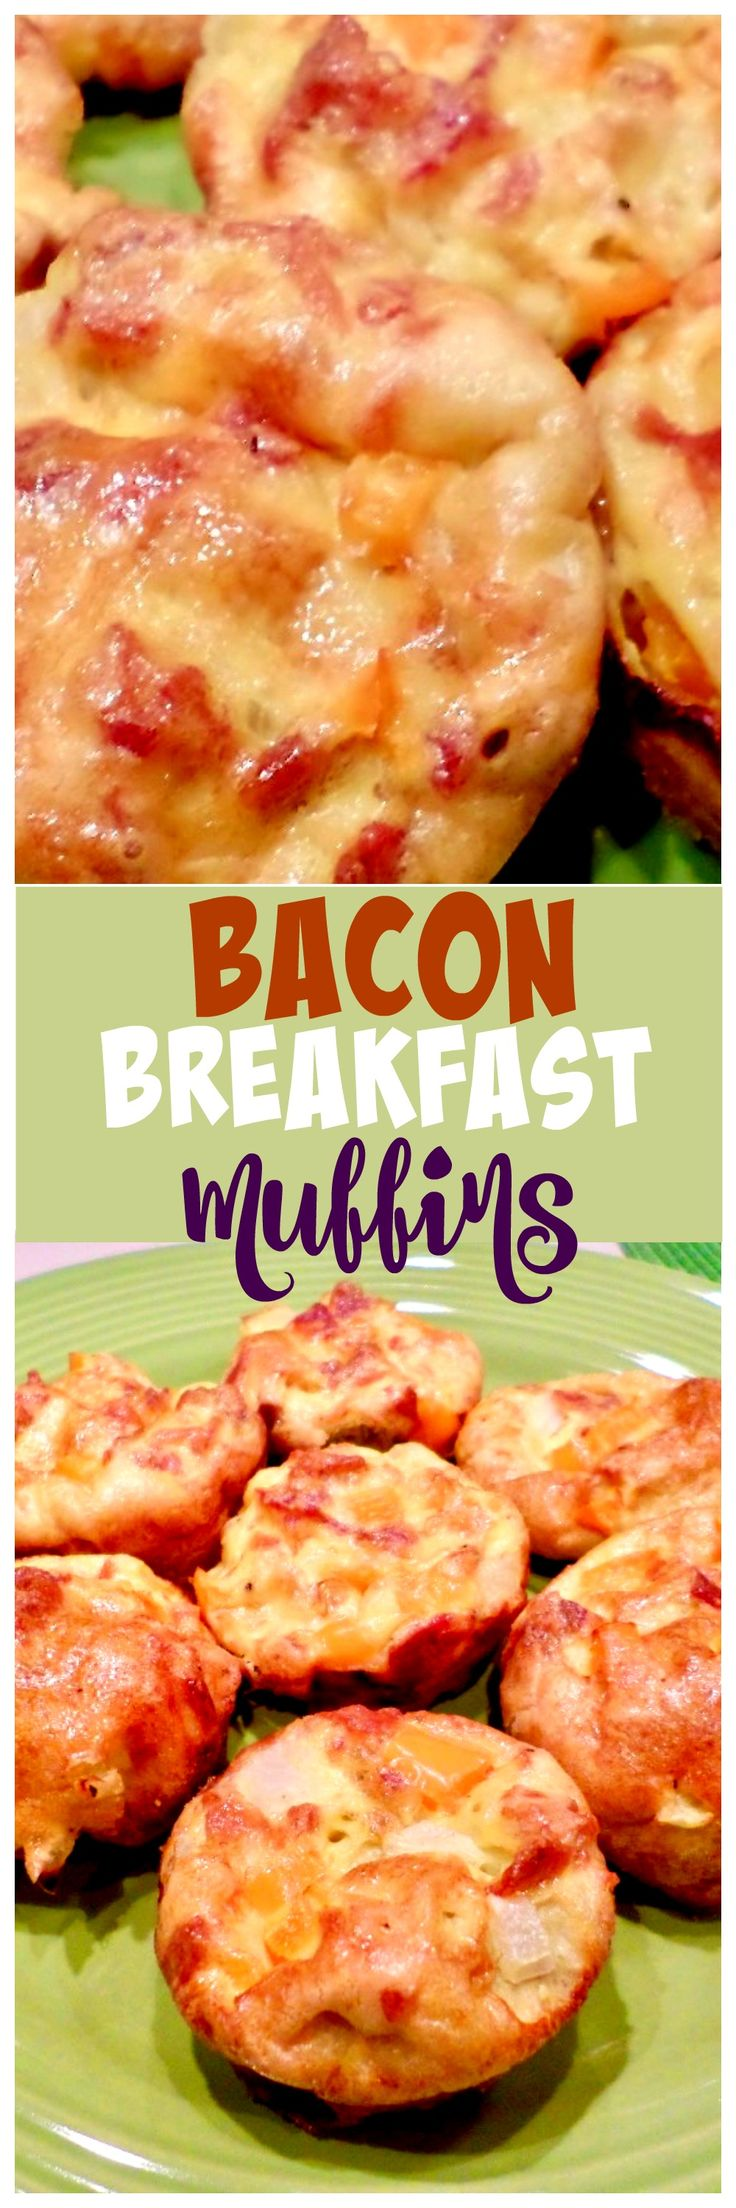 Bacon Breakfast Muffins - make them ahead of time for those busy mornings! #eggs #bacon #muffins 3muffin #makeahead #breakfast #breakfastidea